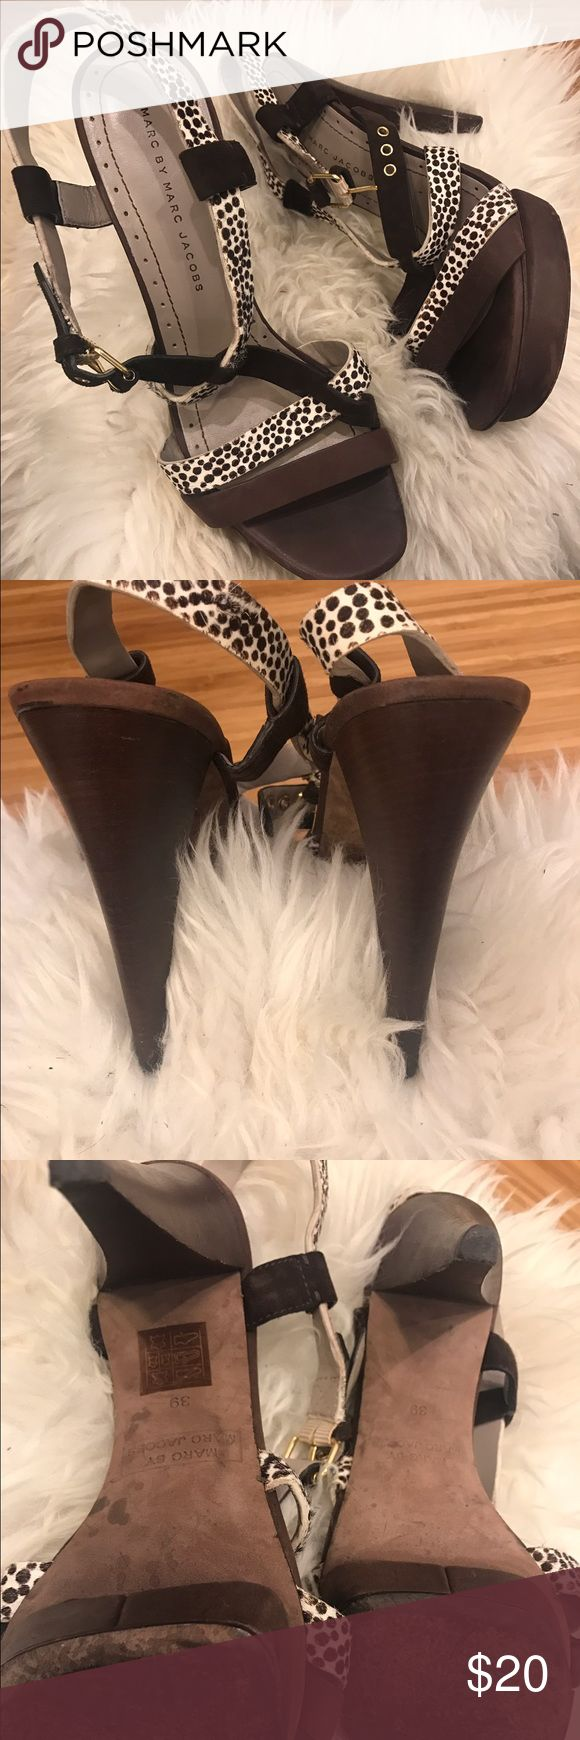 Marc by Marc Jacobs high heel sandals. All leather, upper and sole with plattform. Gently used ( 2 events) Marc by Marc Jacobs Shoes Sandals